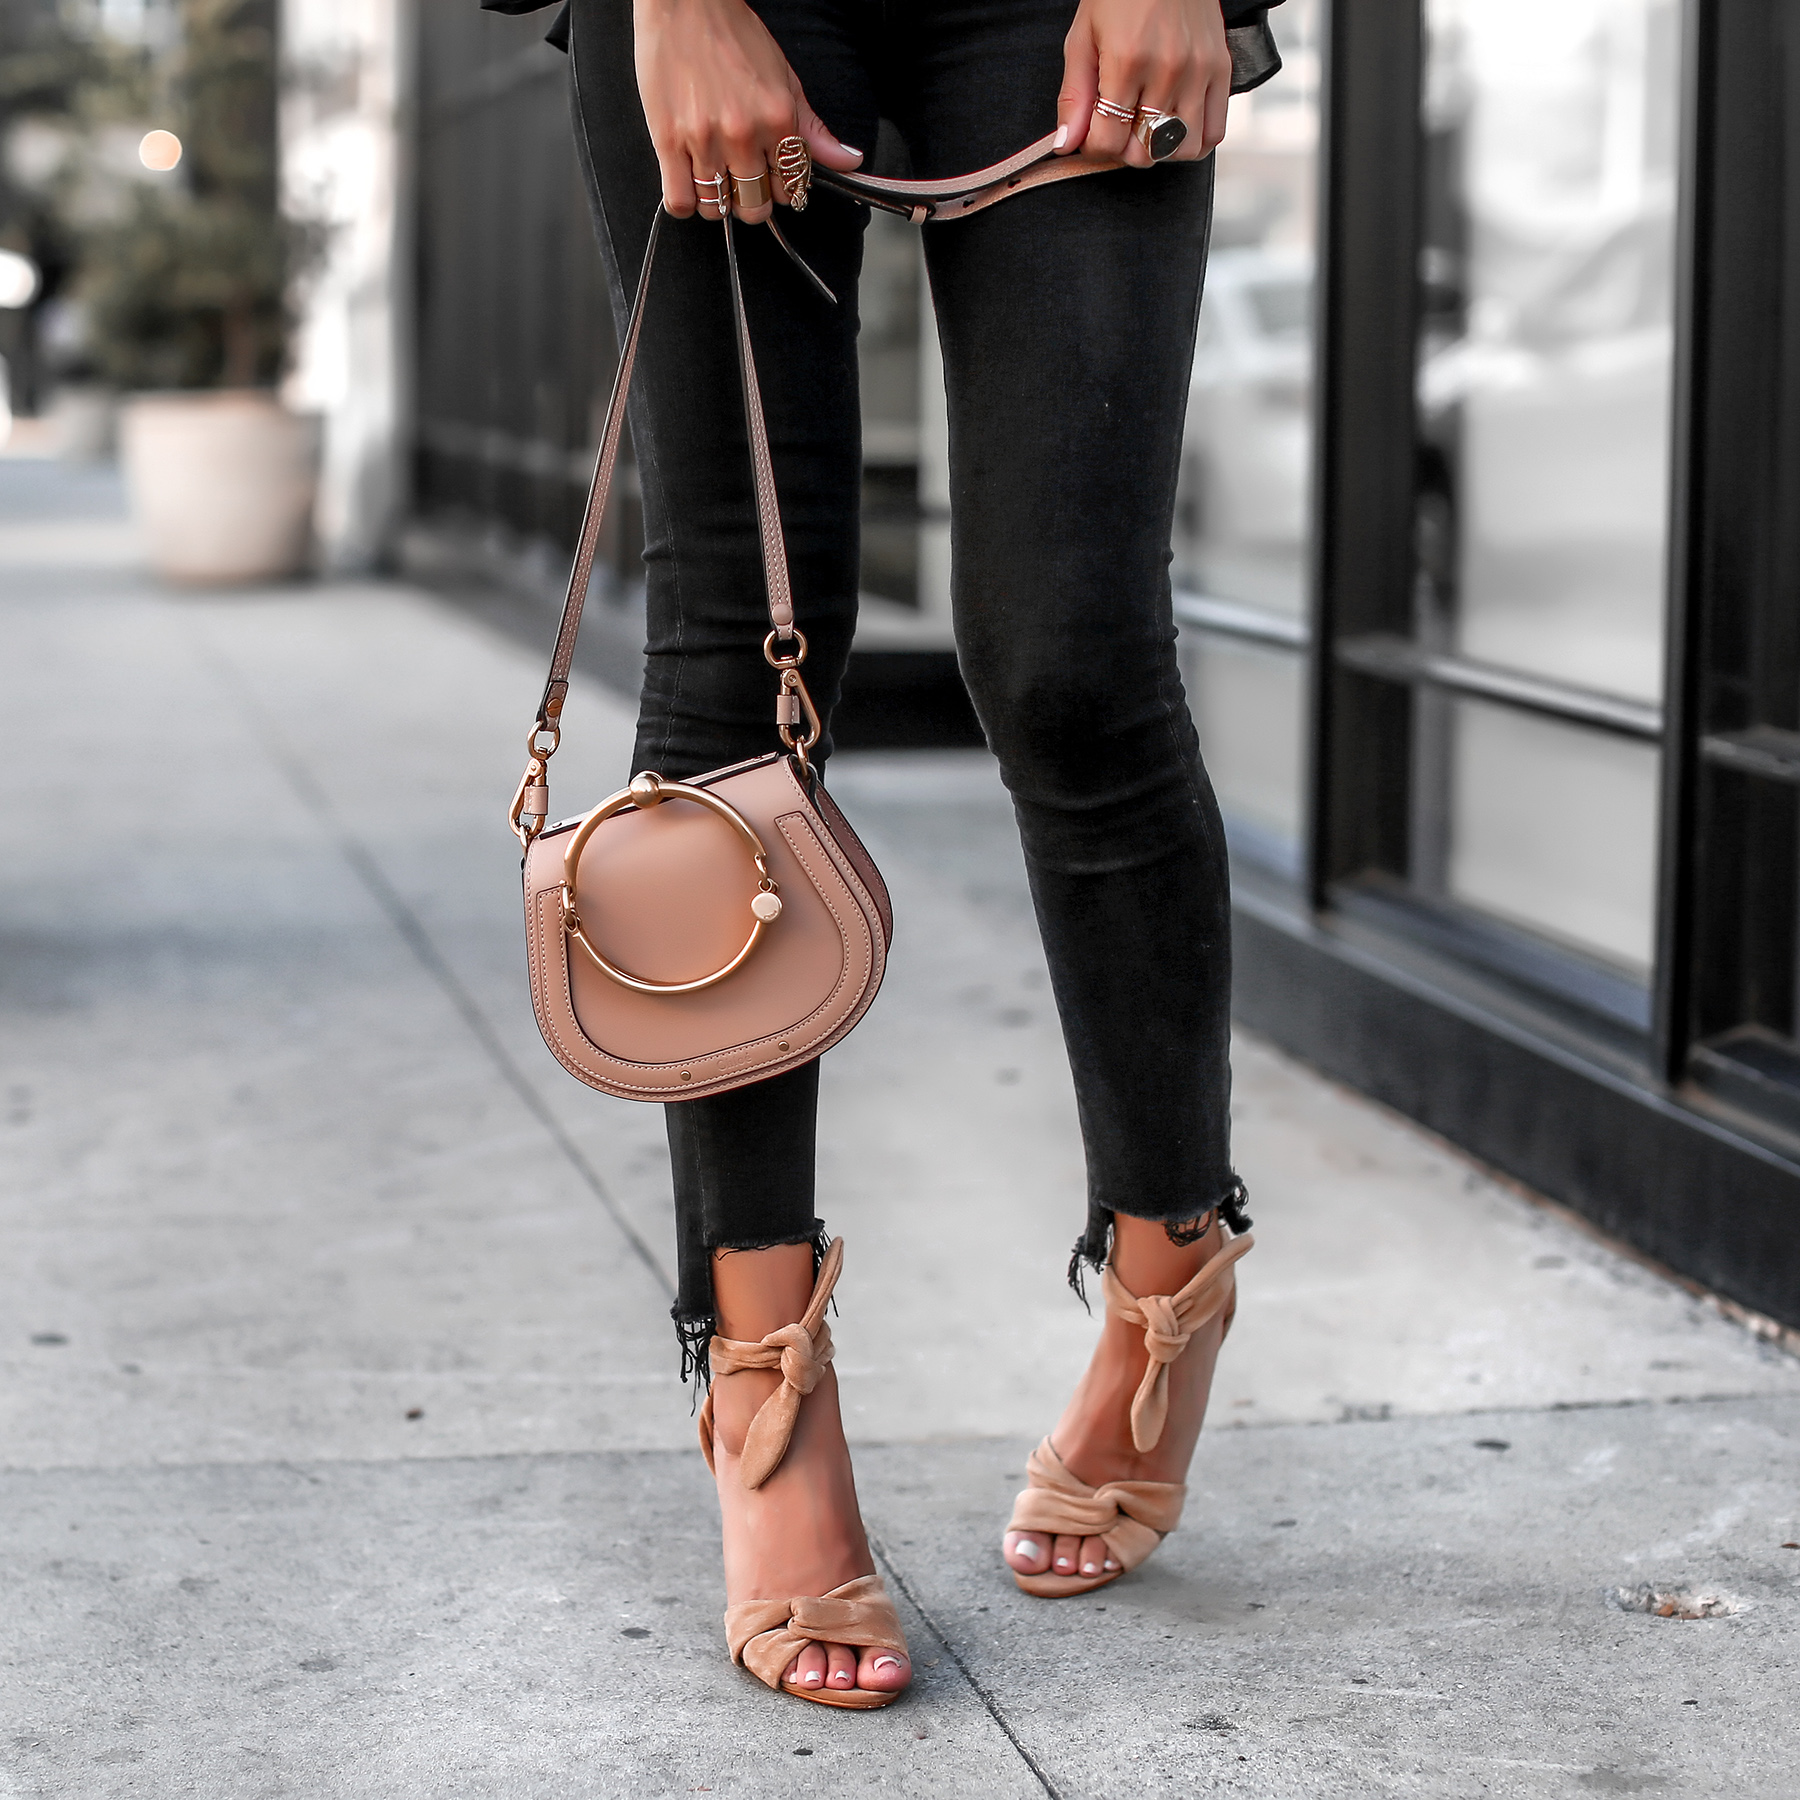 Black ripped jeans nude chloe nile bag schutz suede sandals.jpg